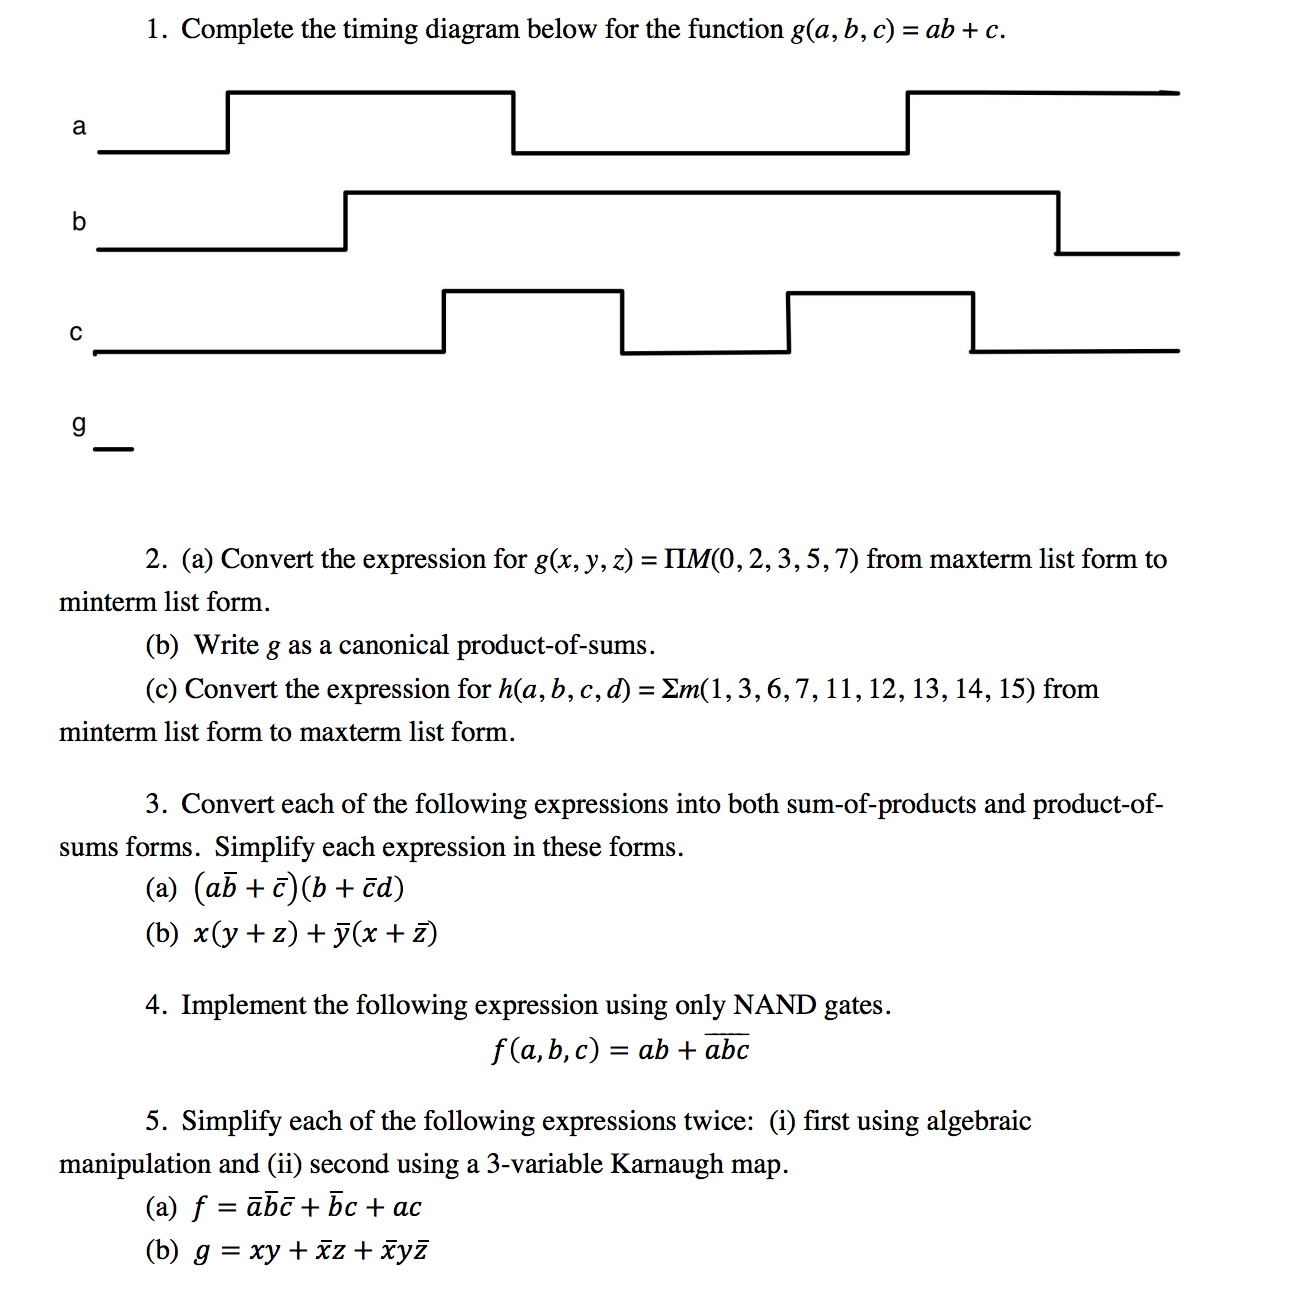 1 Complete The Timing Diagram Below For Funct